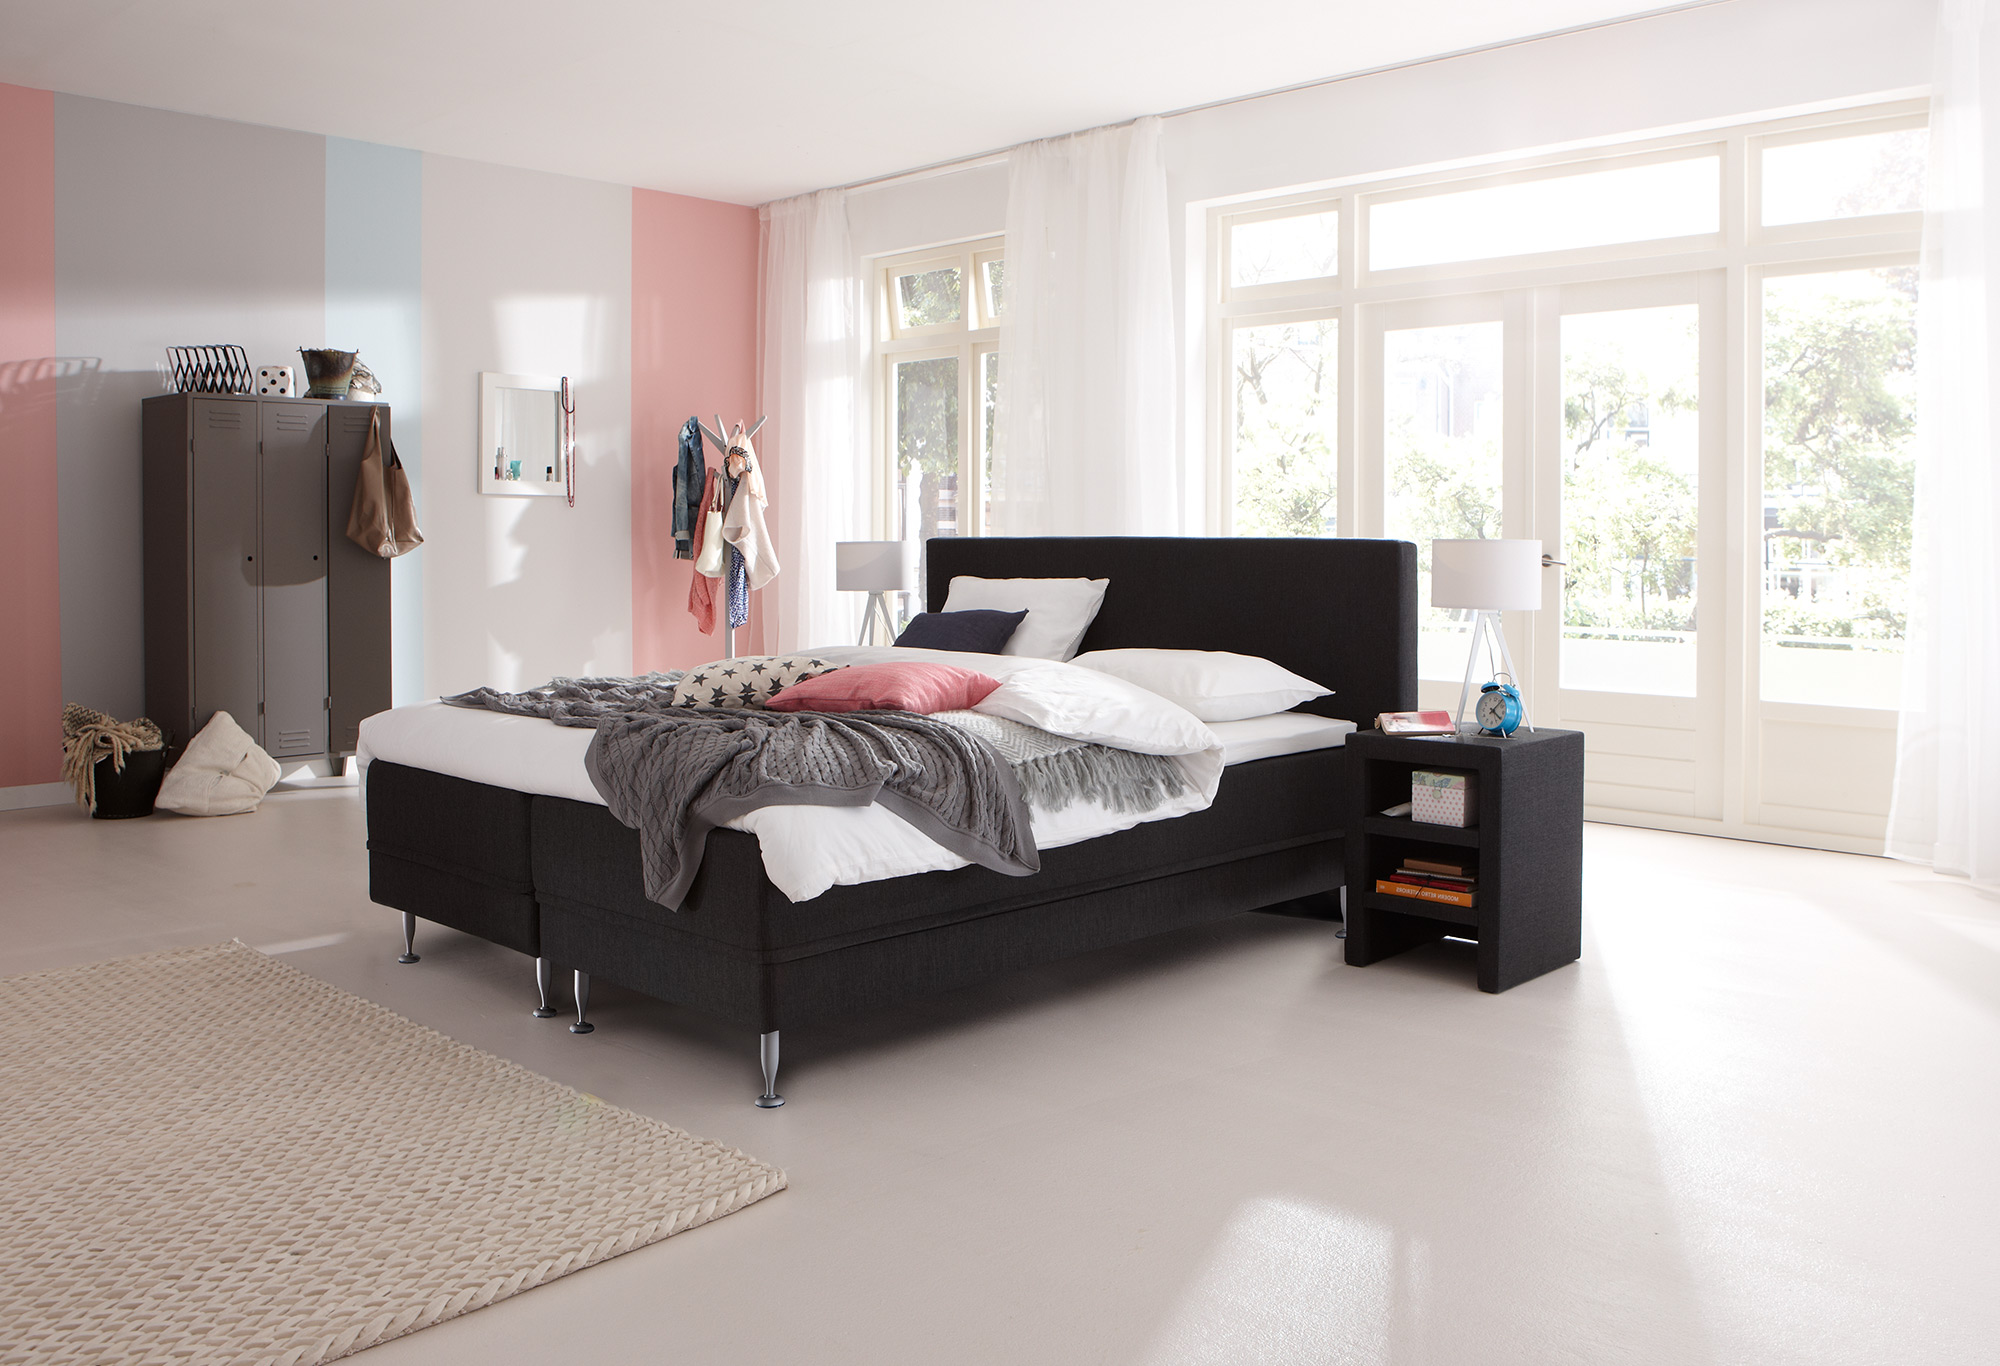 bettdecken ingolstadt novel lattenroste kik bettdecken tapeten ideen f rs schlafzimmer ikea. Black Bedroom Furniture Sets. Home Design Ideas